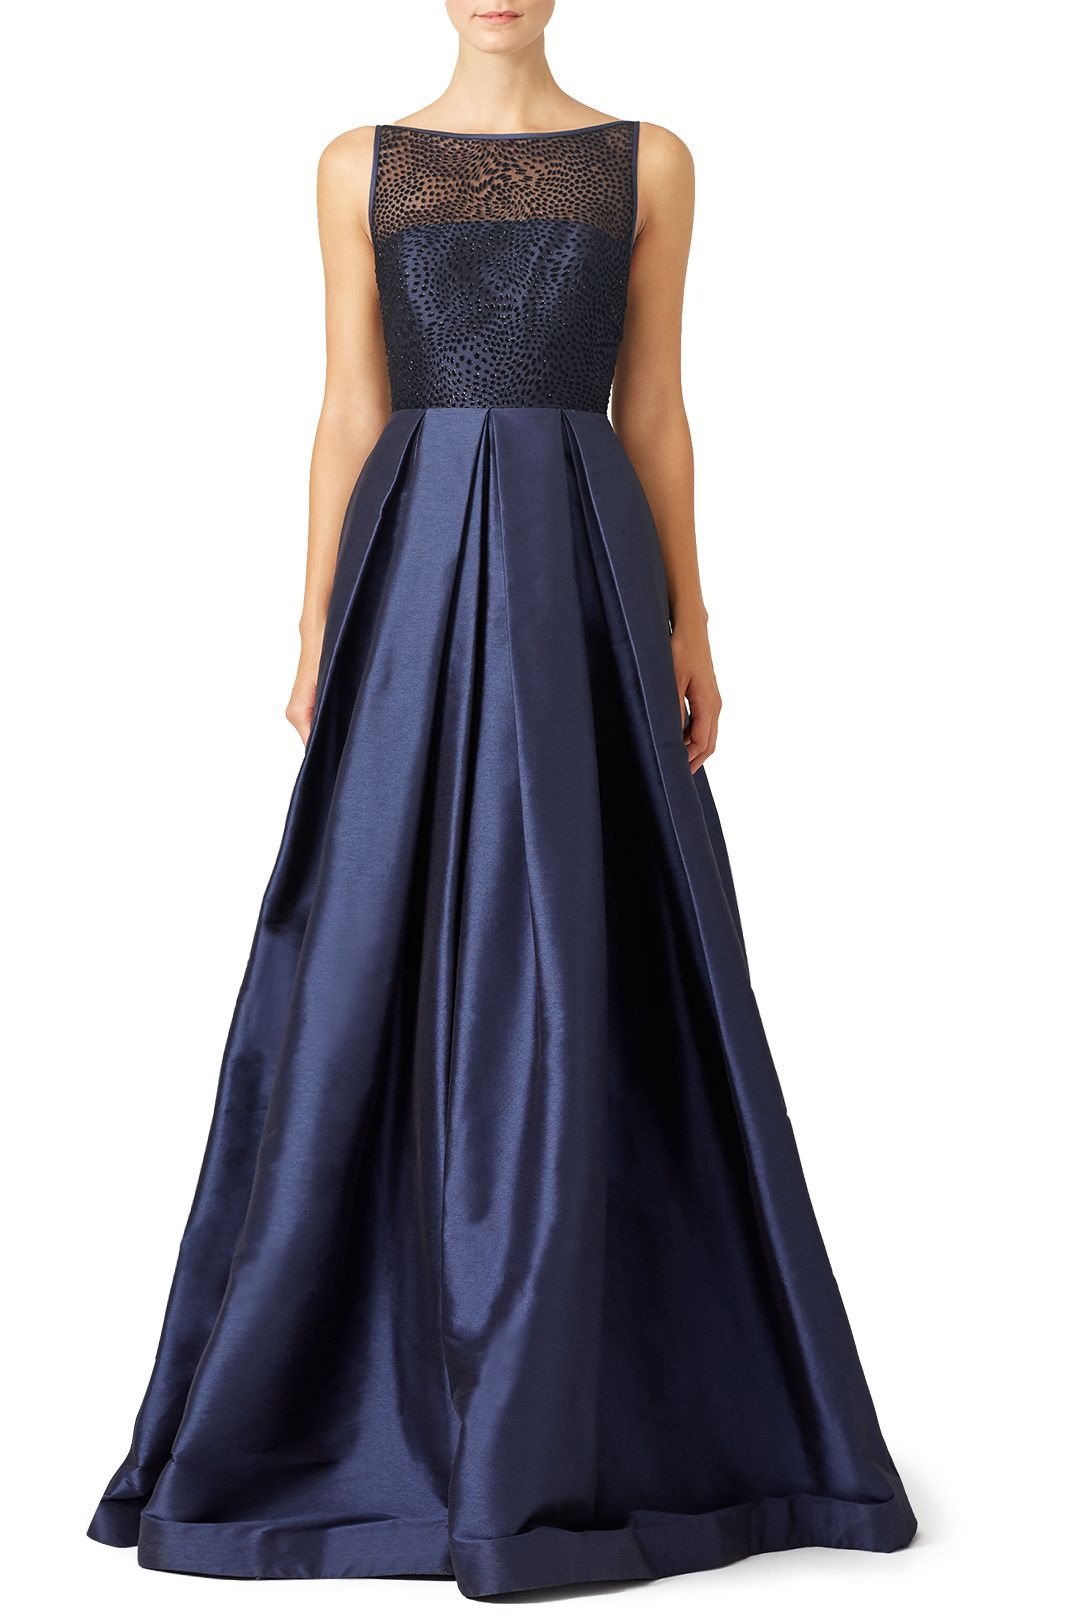 Rent Francesca Gown by ML Monique Lhuillier for $125 only at Rent ...